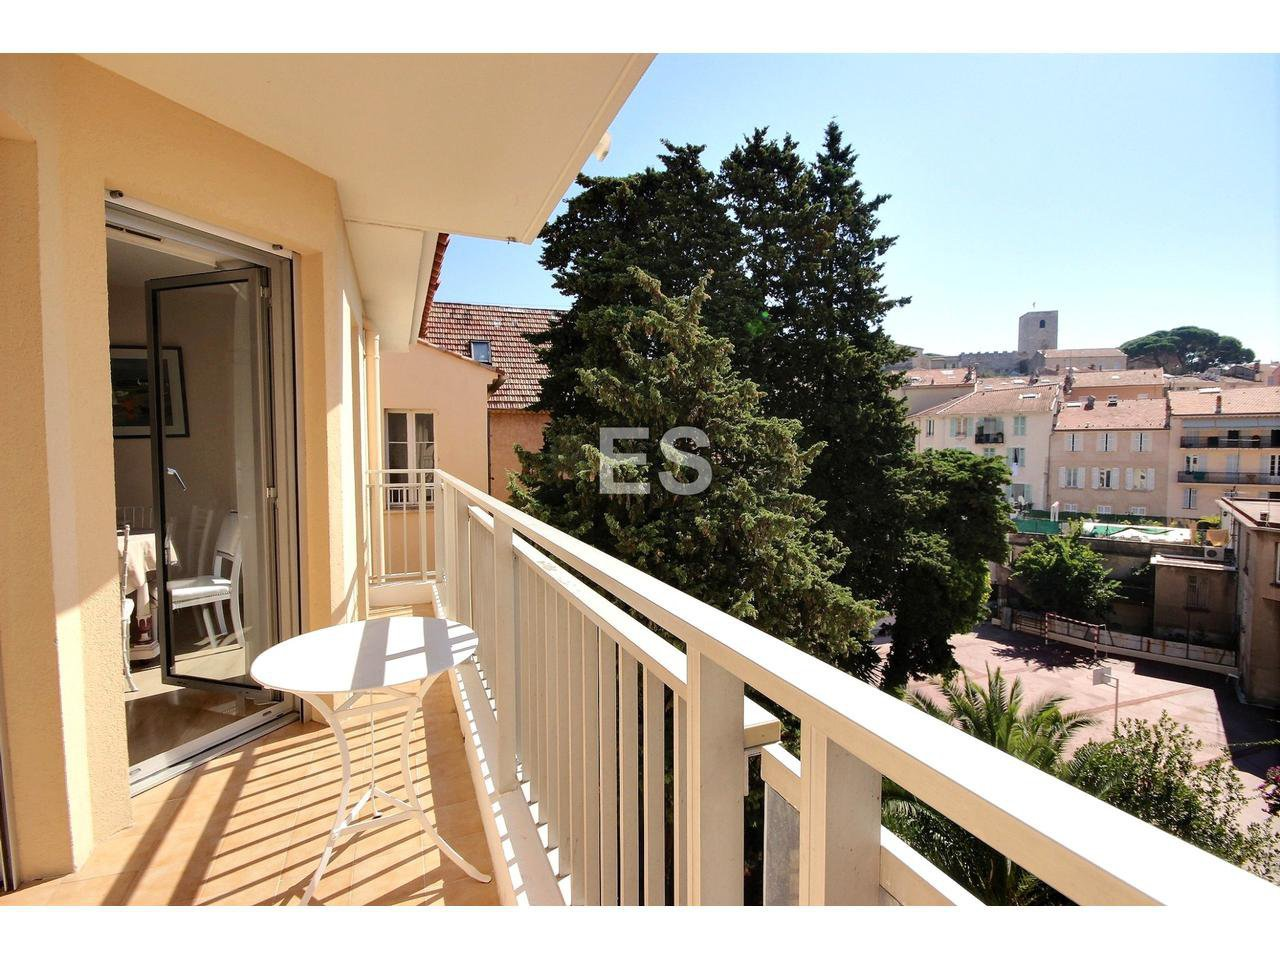 Property for sale in Cannes Le Suquet with balcony